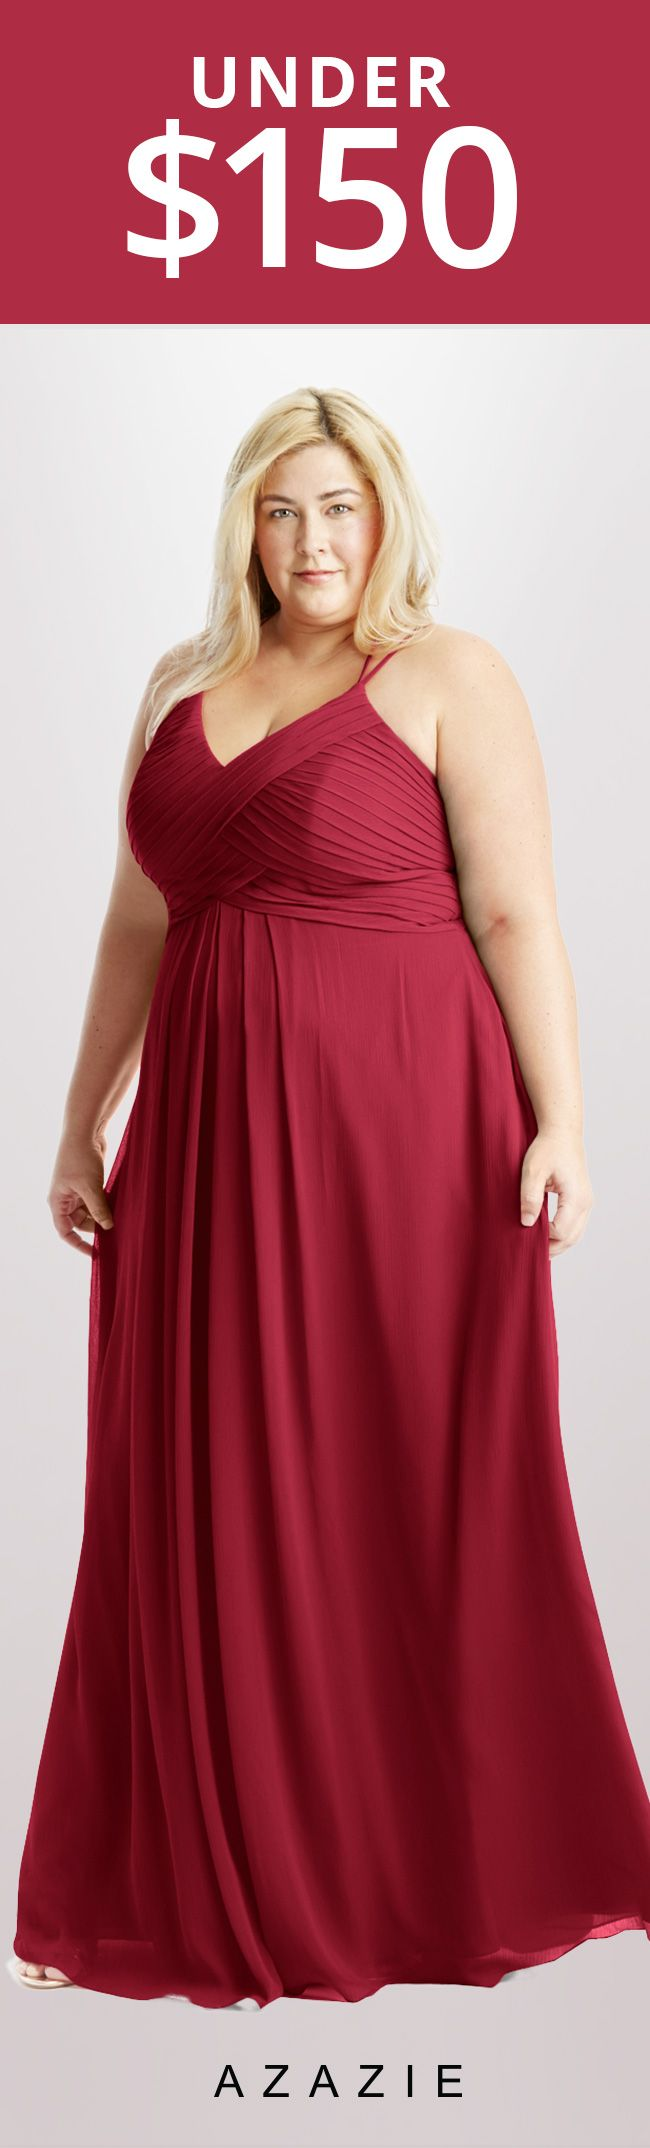 Check out our styles from long elegant gowns to fun and